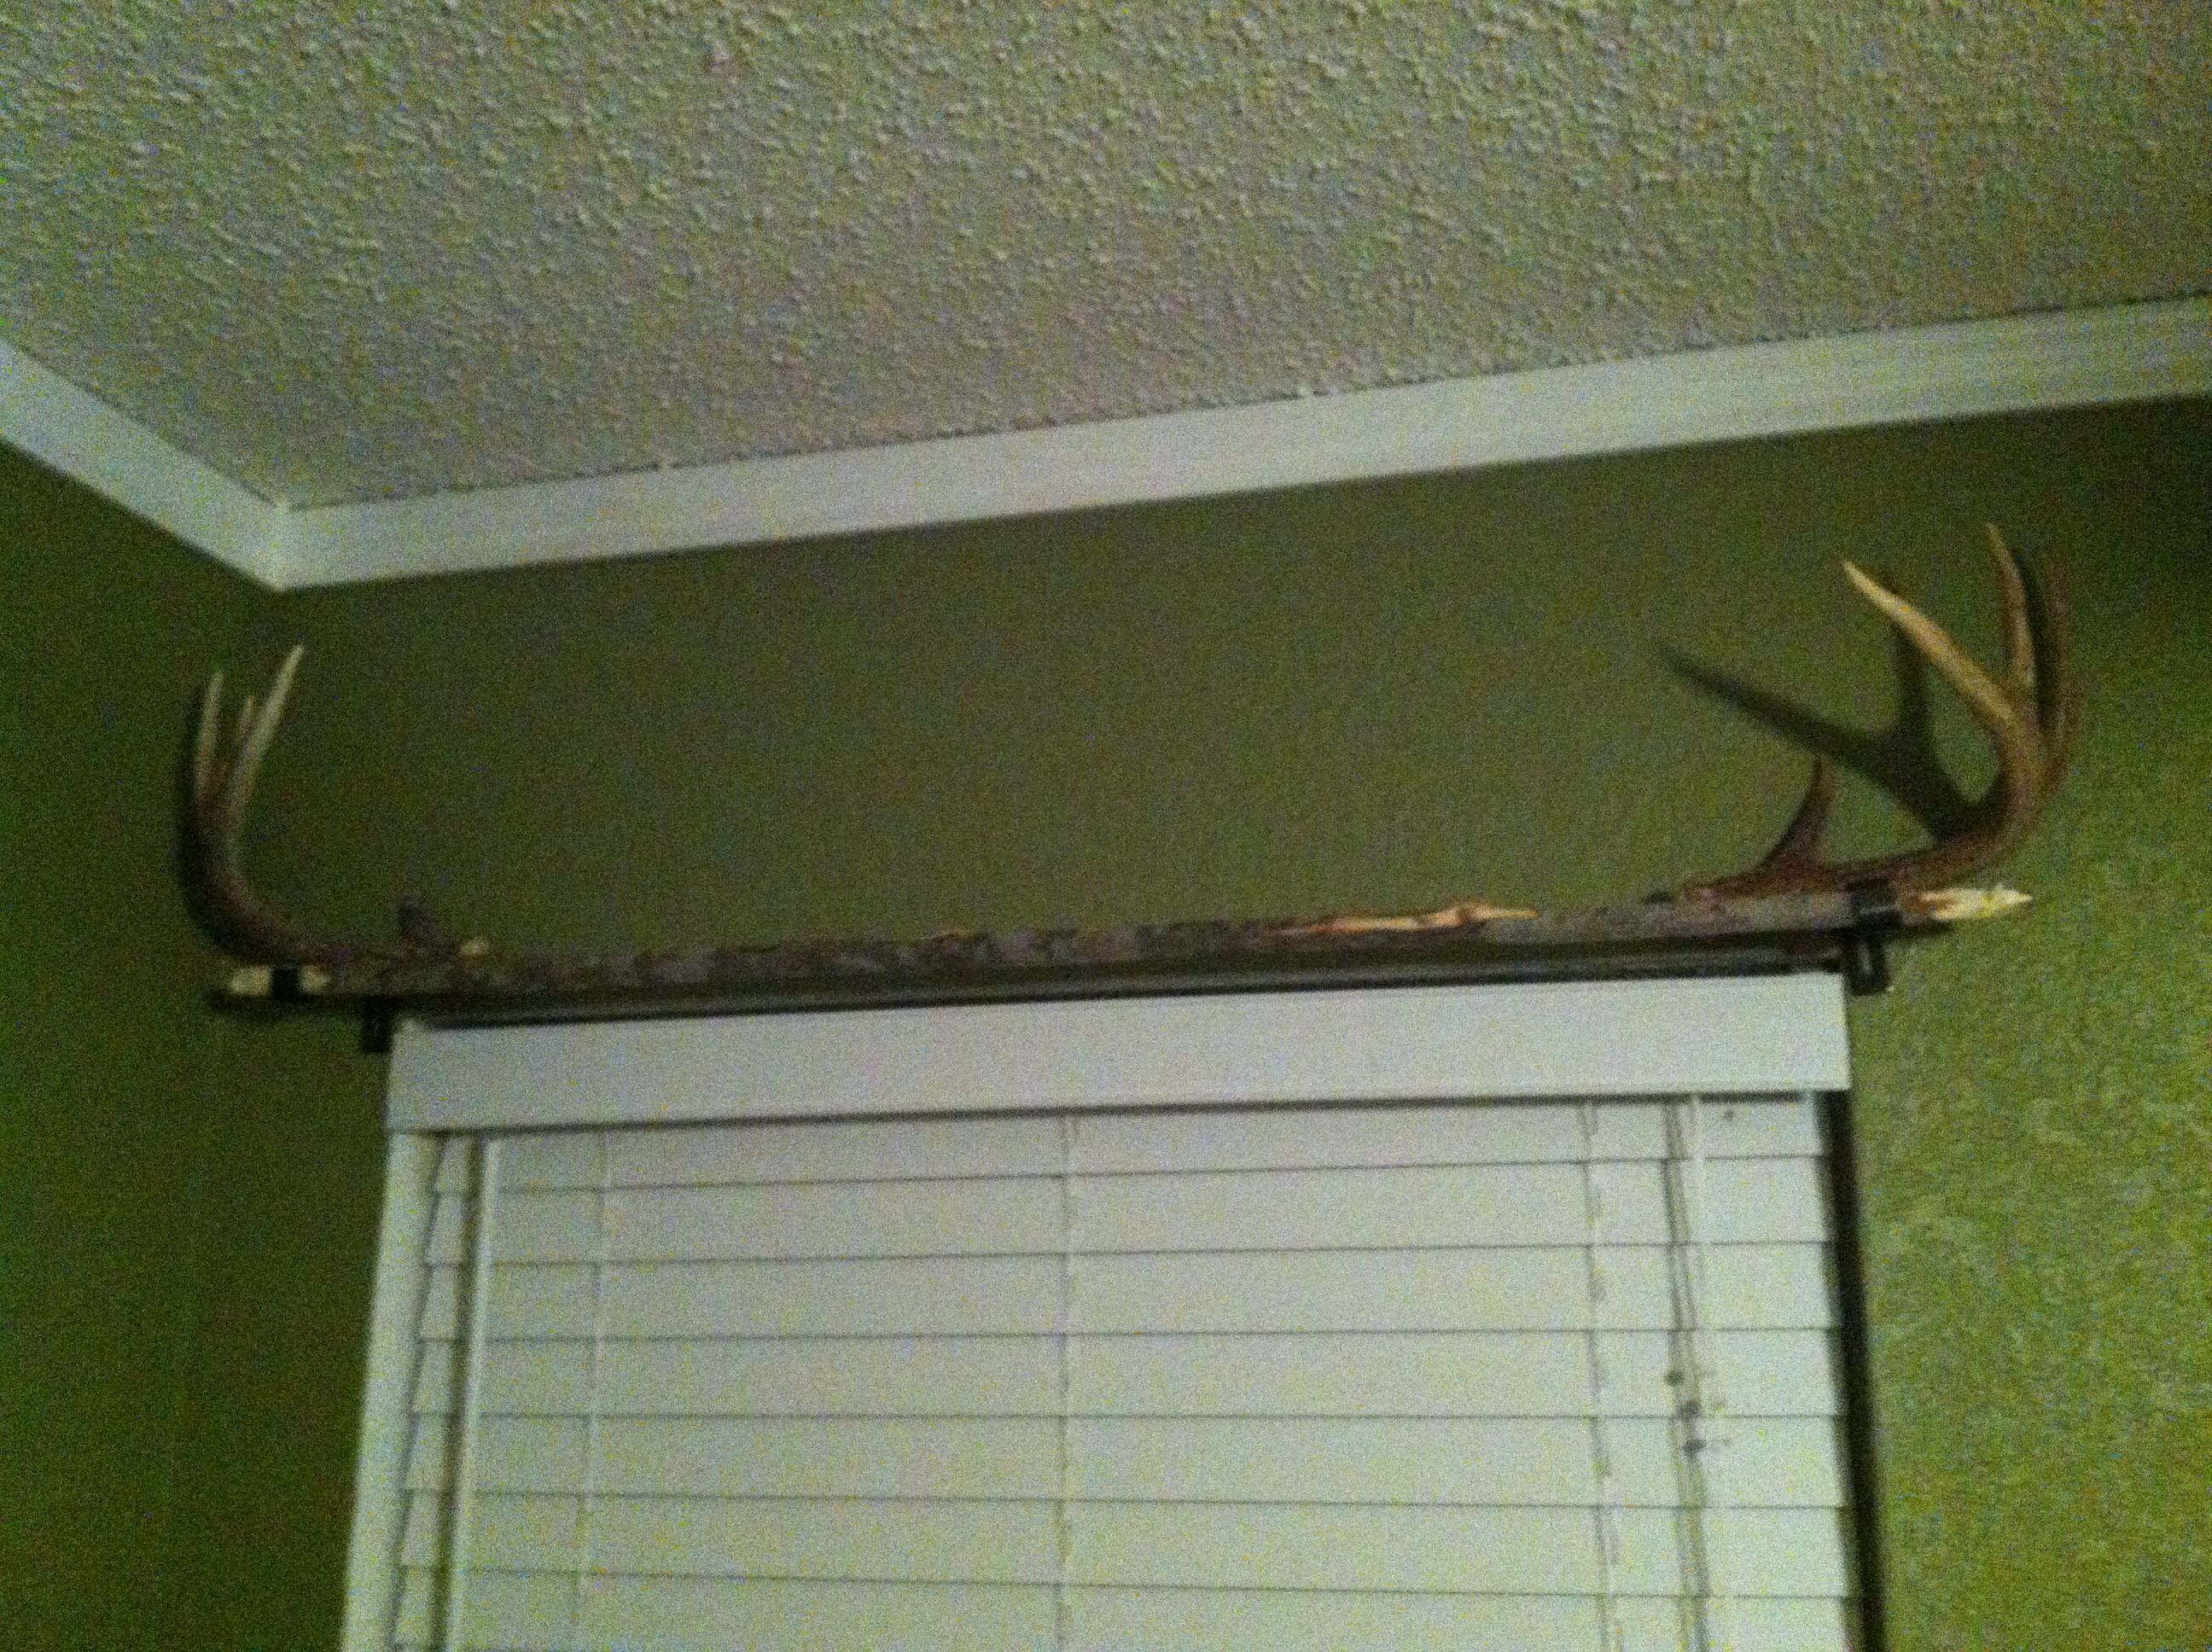 Nautical curtain rod finials - Homemade Curtain Rod A Long Straight Branch With Antlers For End Pieces Curtains To